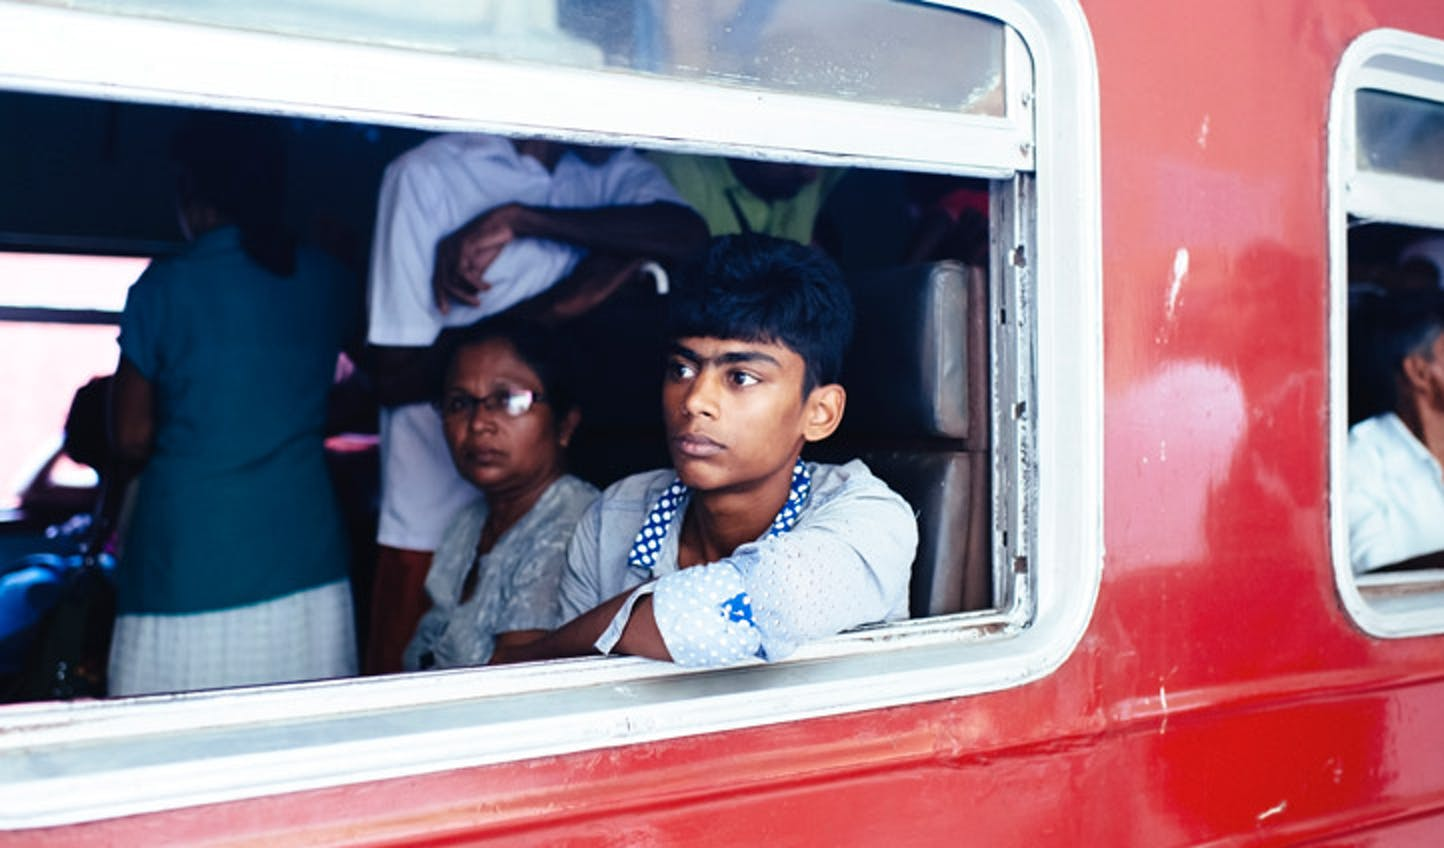 Locals on a train from Colombo